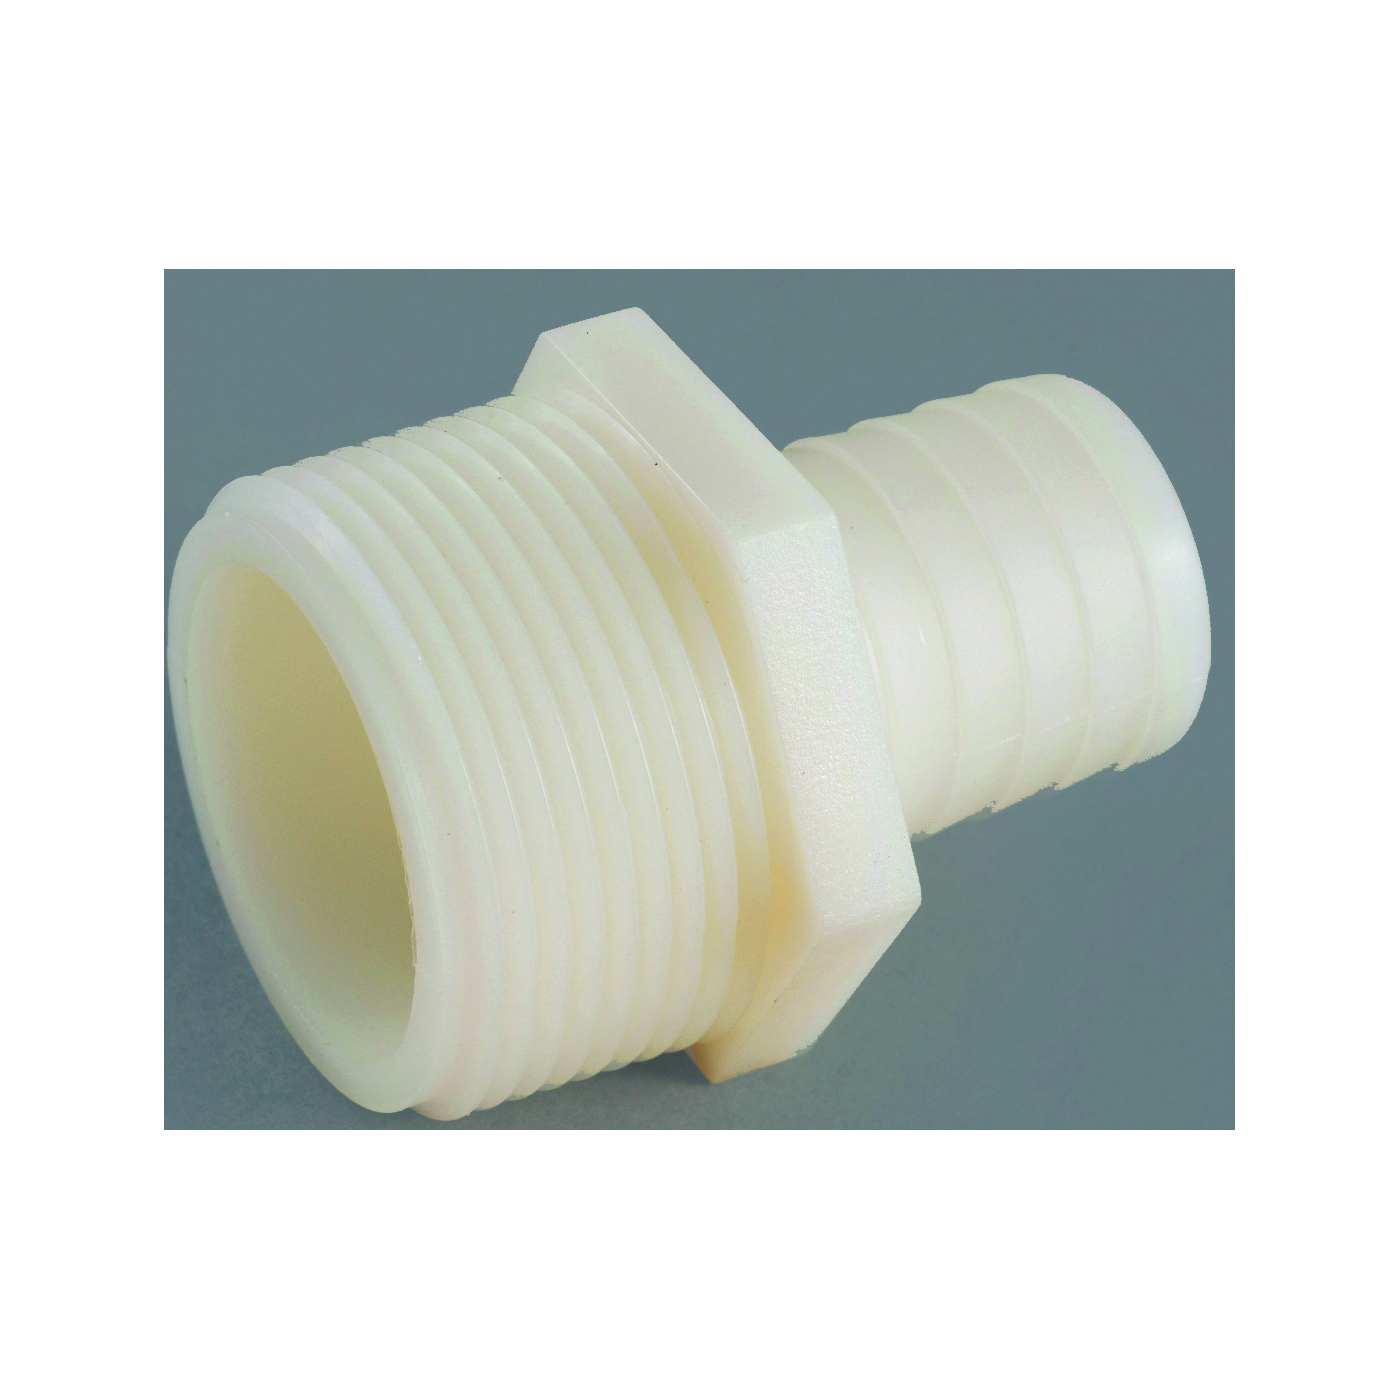 Picture of Anderson Metals 53701-0604 Hose Adapter, 1/4 in, Barb, 3/8 in, MIP, 150 psi Pressure, Nylon